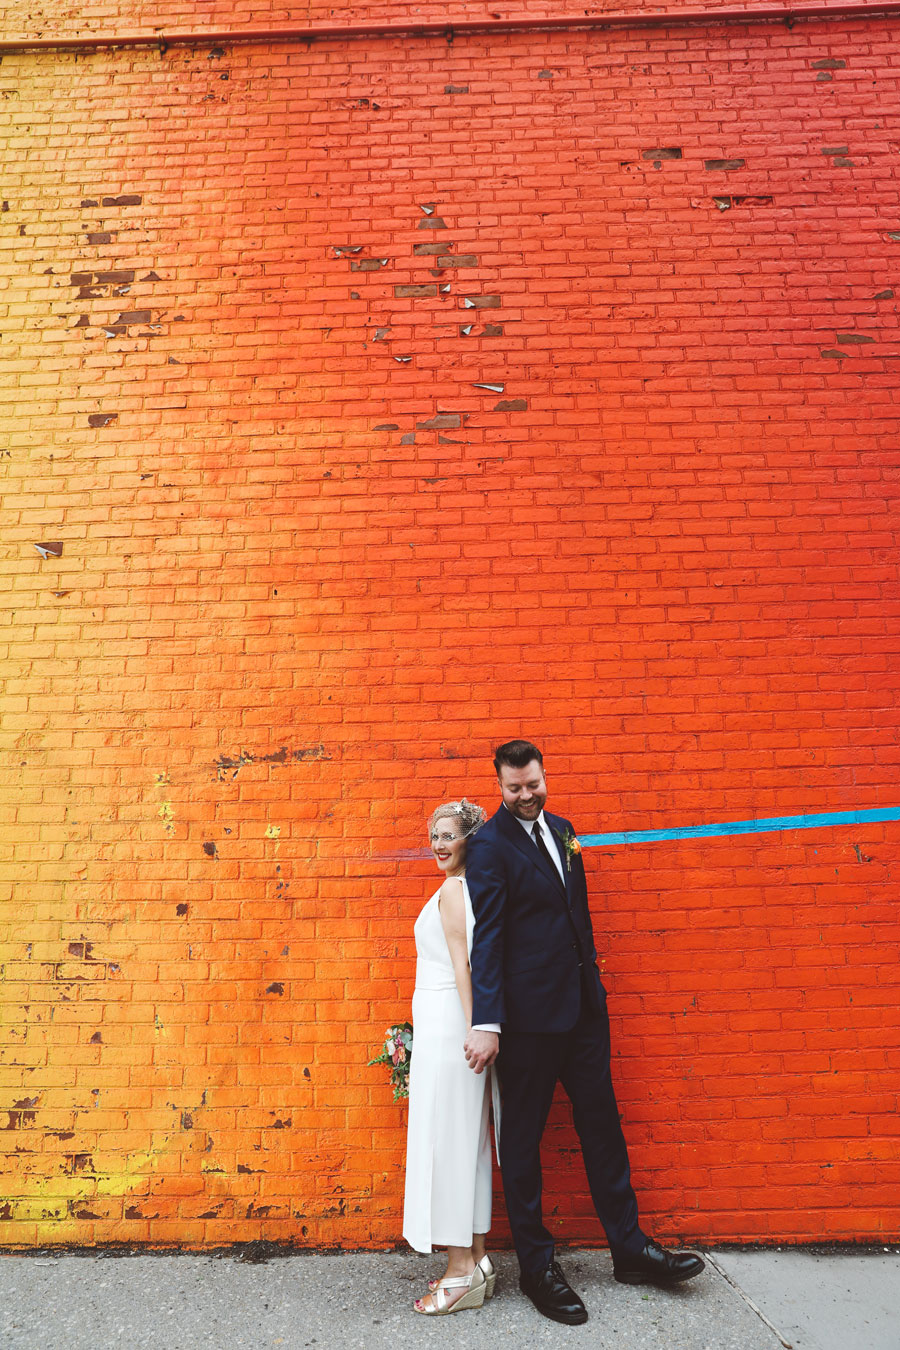 Dumbo graffiti wedding